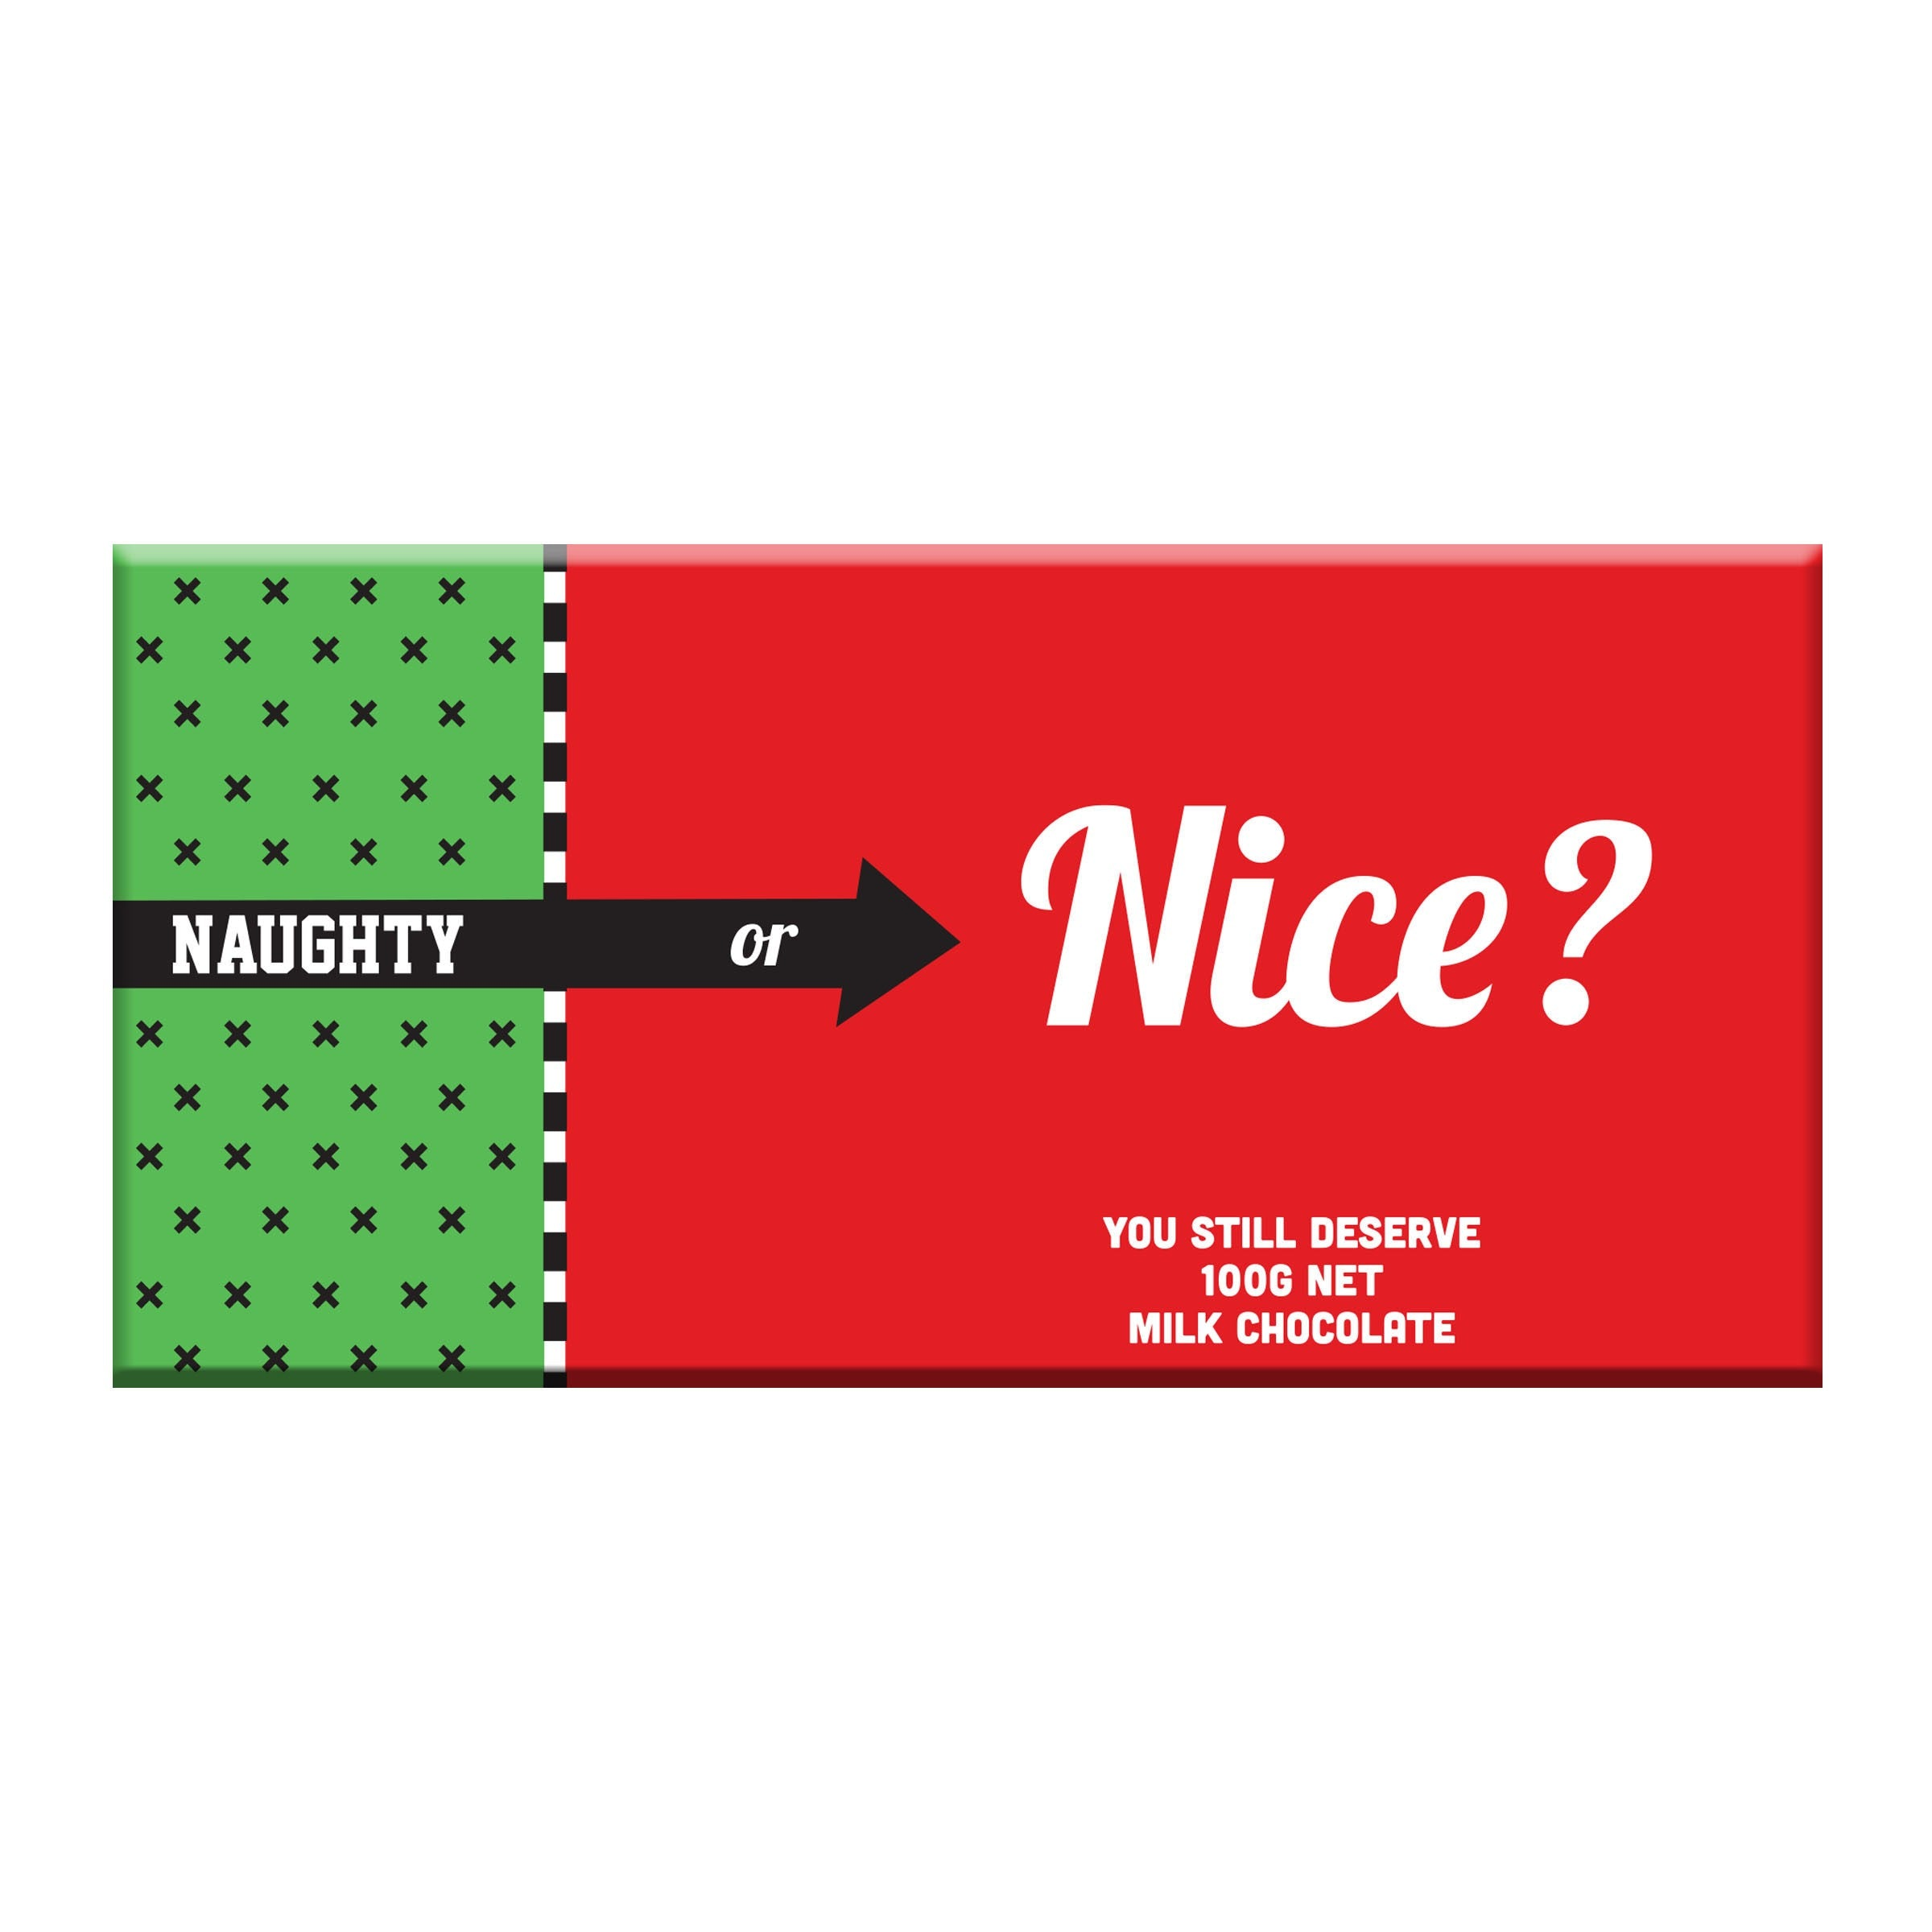 Naughty or Nice ? Milk Chocolate - Pookipoiga